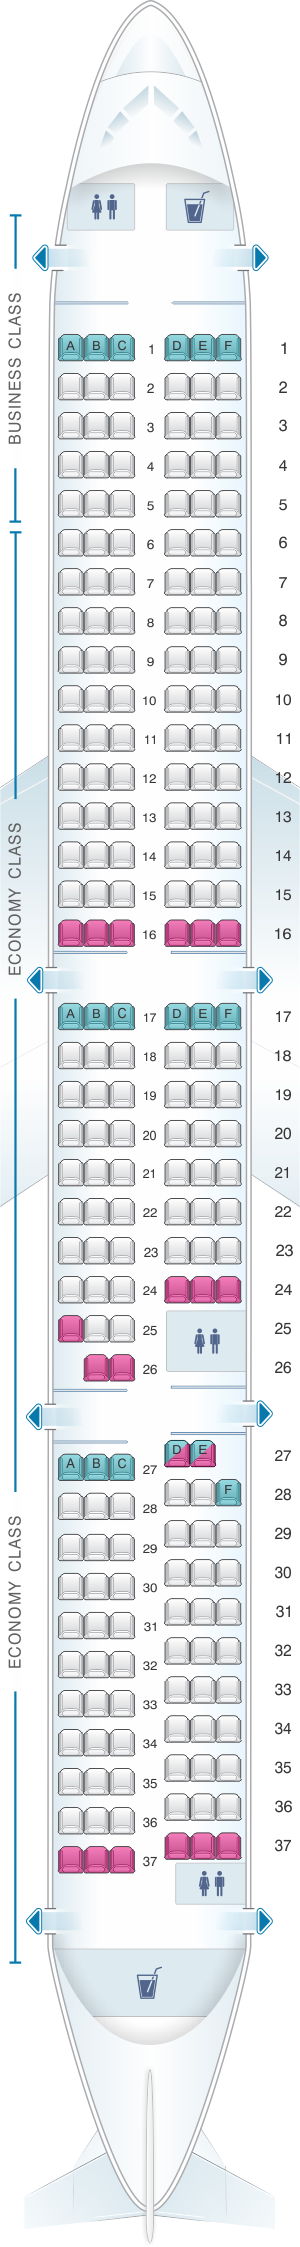 Seat map for Air New Zealand Airbus A321 Neo